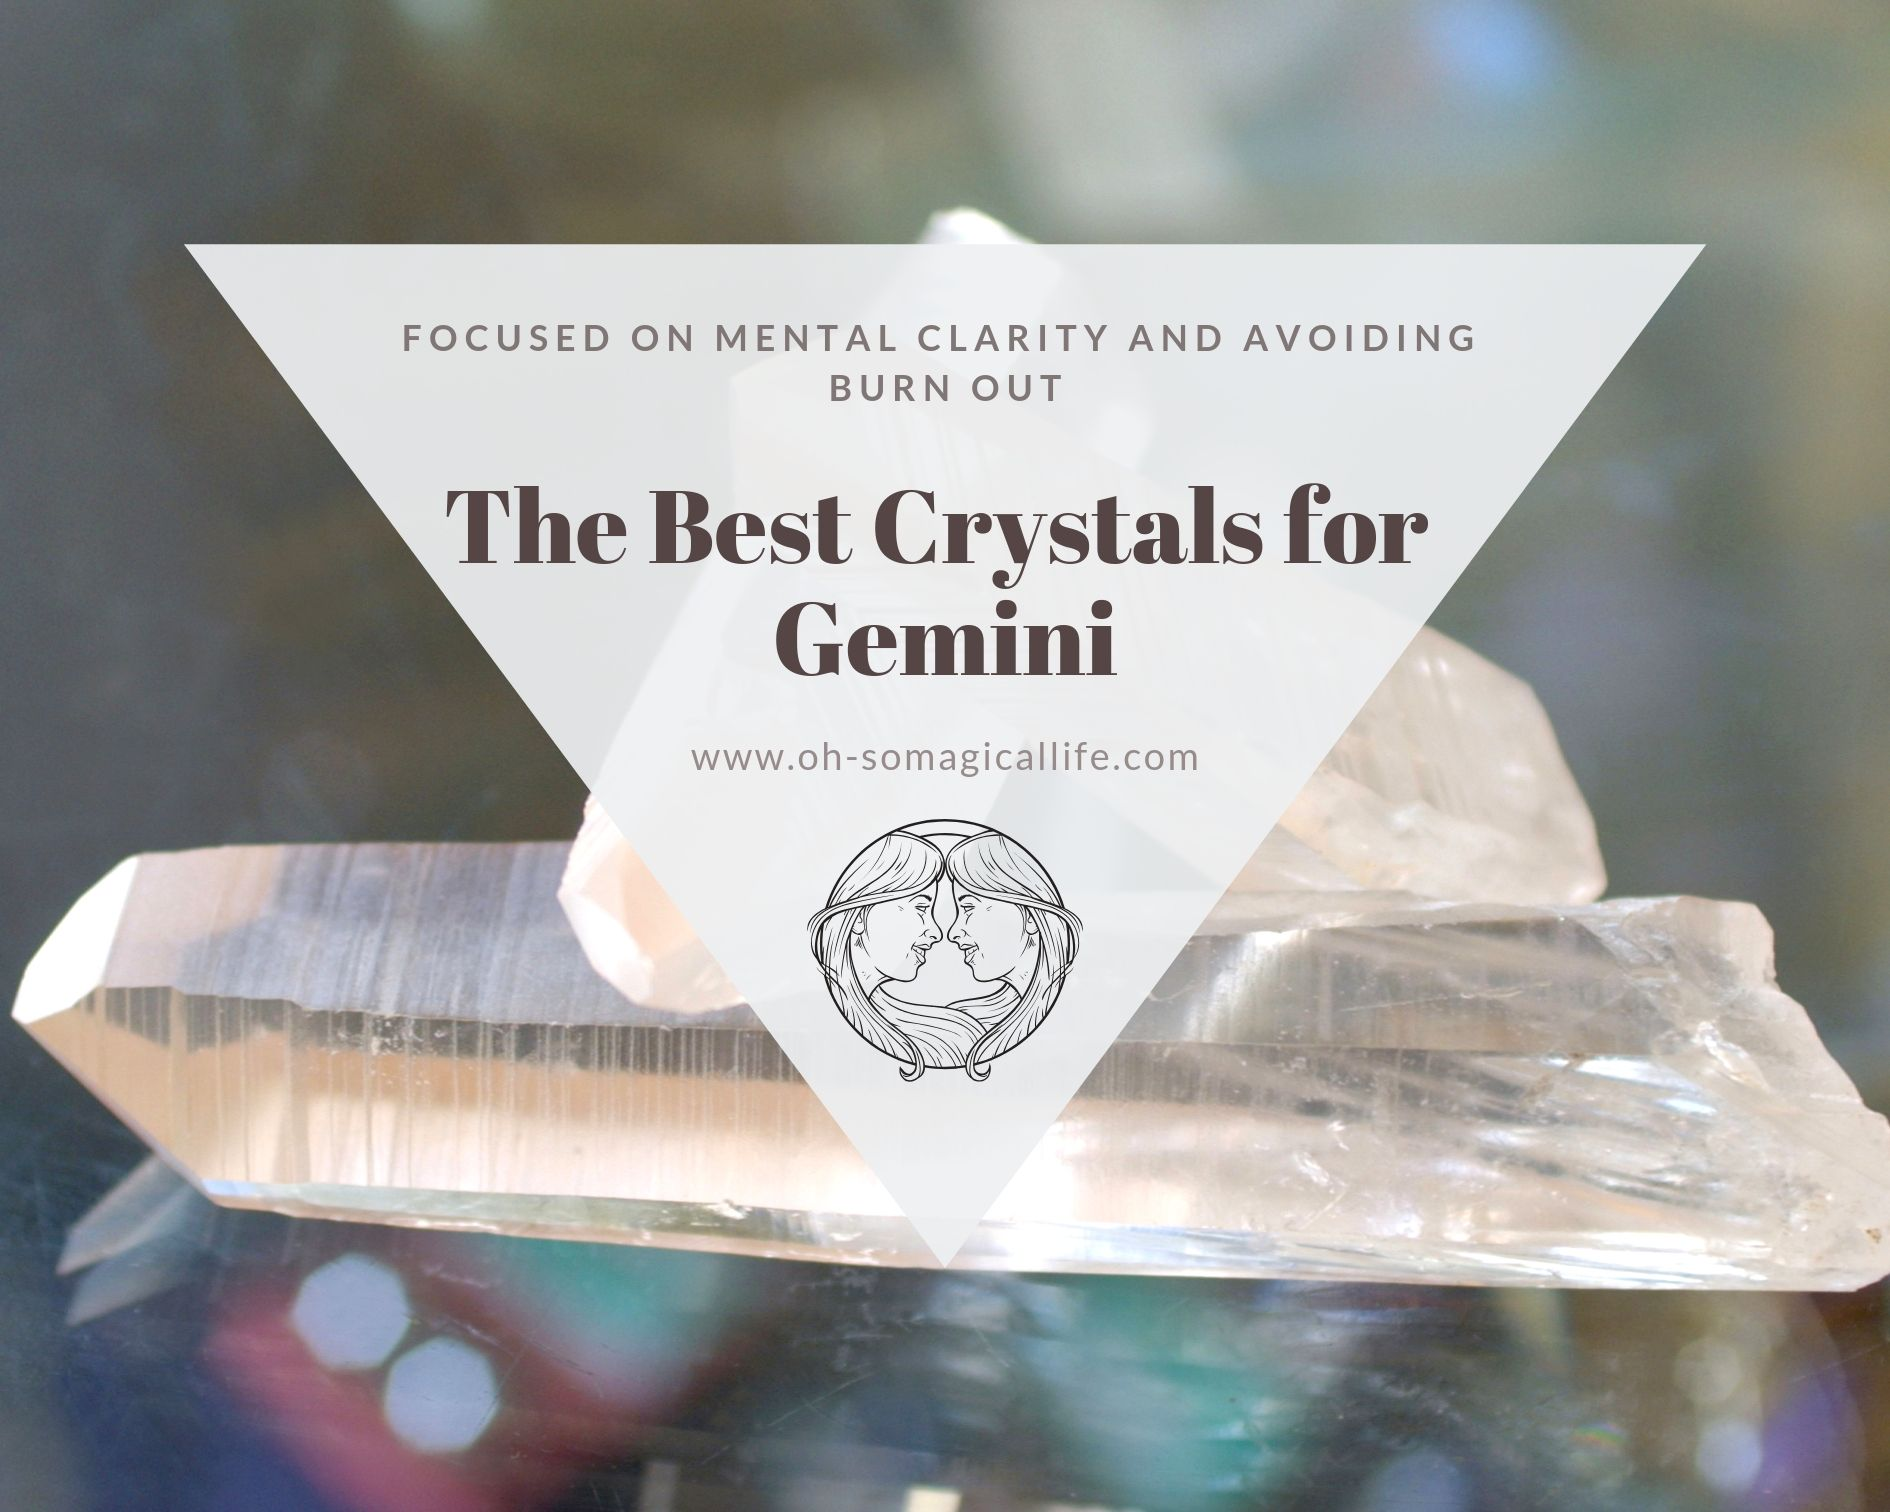 The-Best-Crystals-for Gemini.jpg